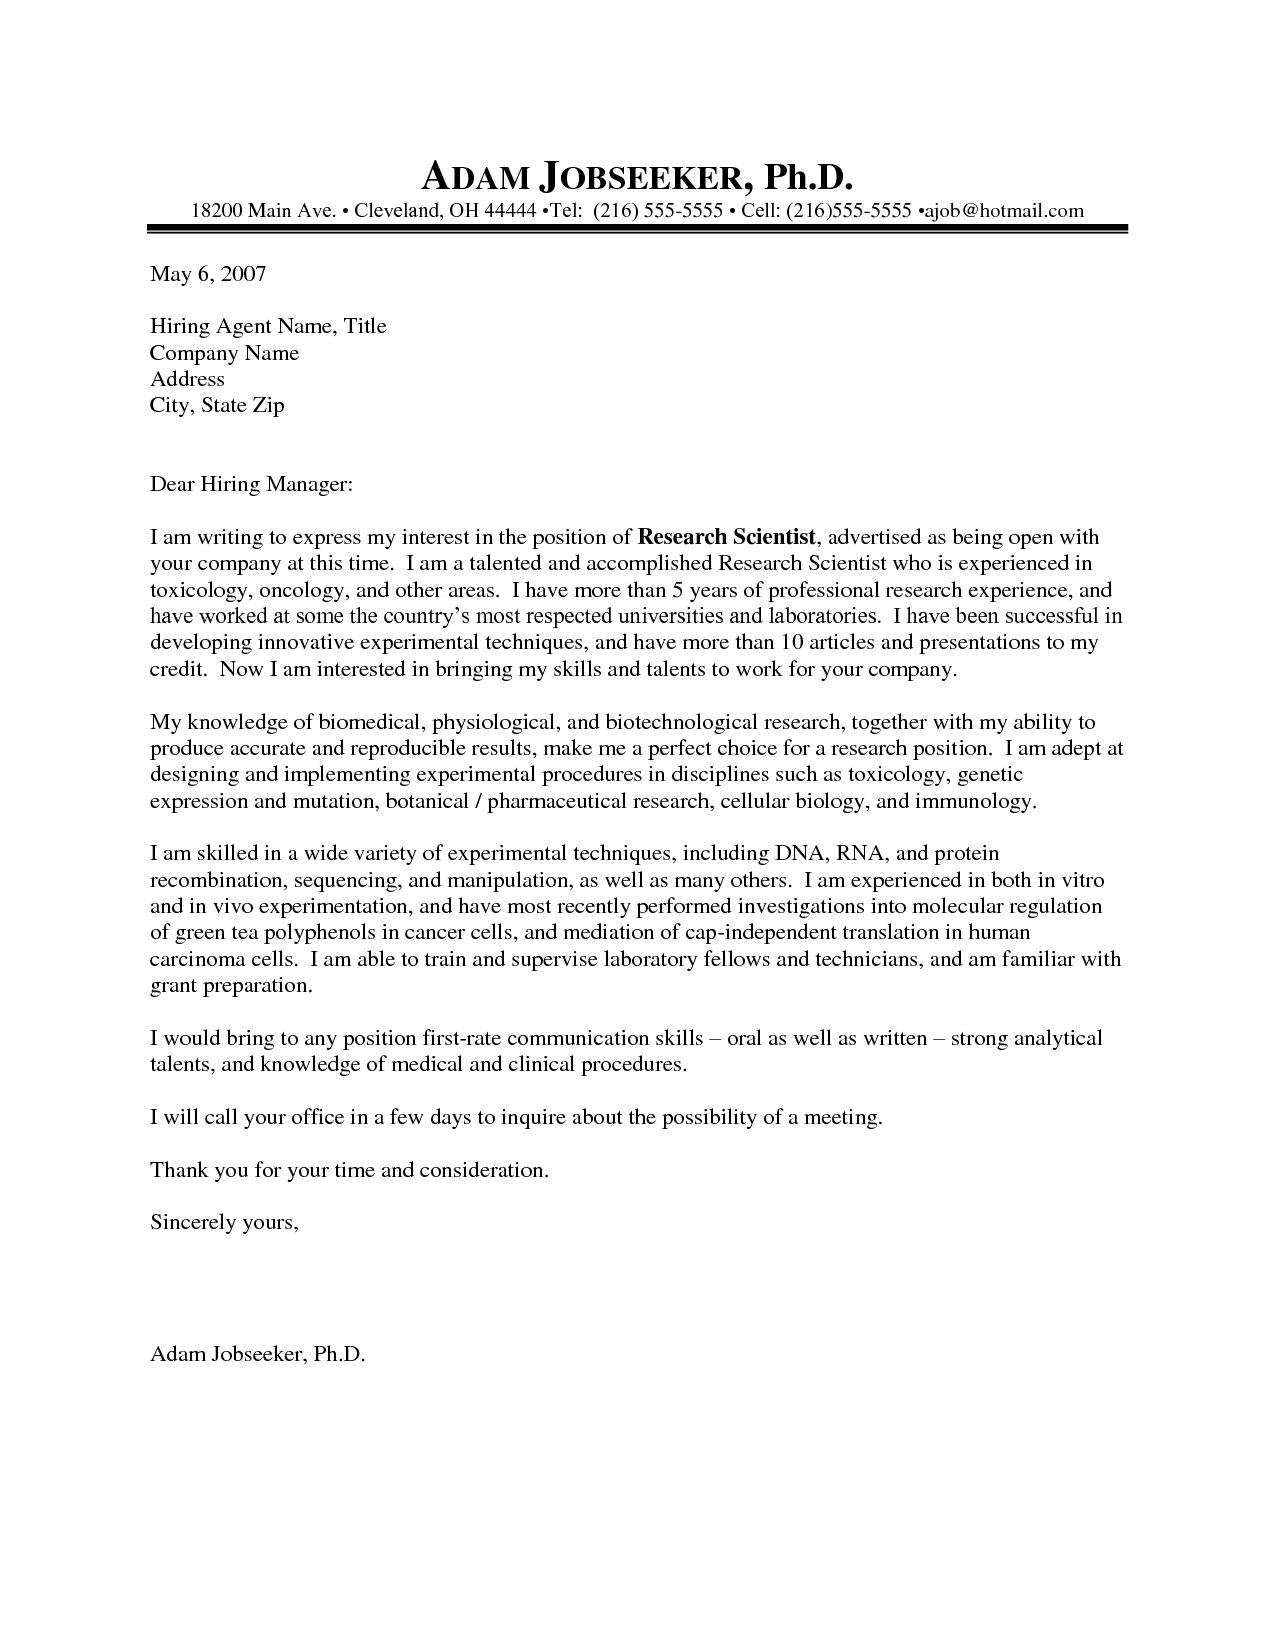 Scientific Cover Letter Examples from www.museumlegs.com